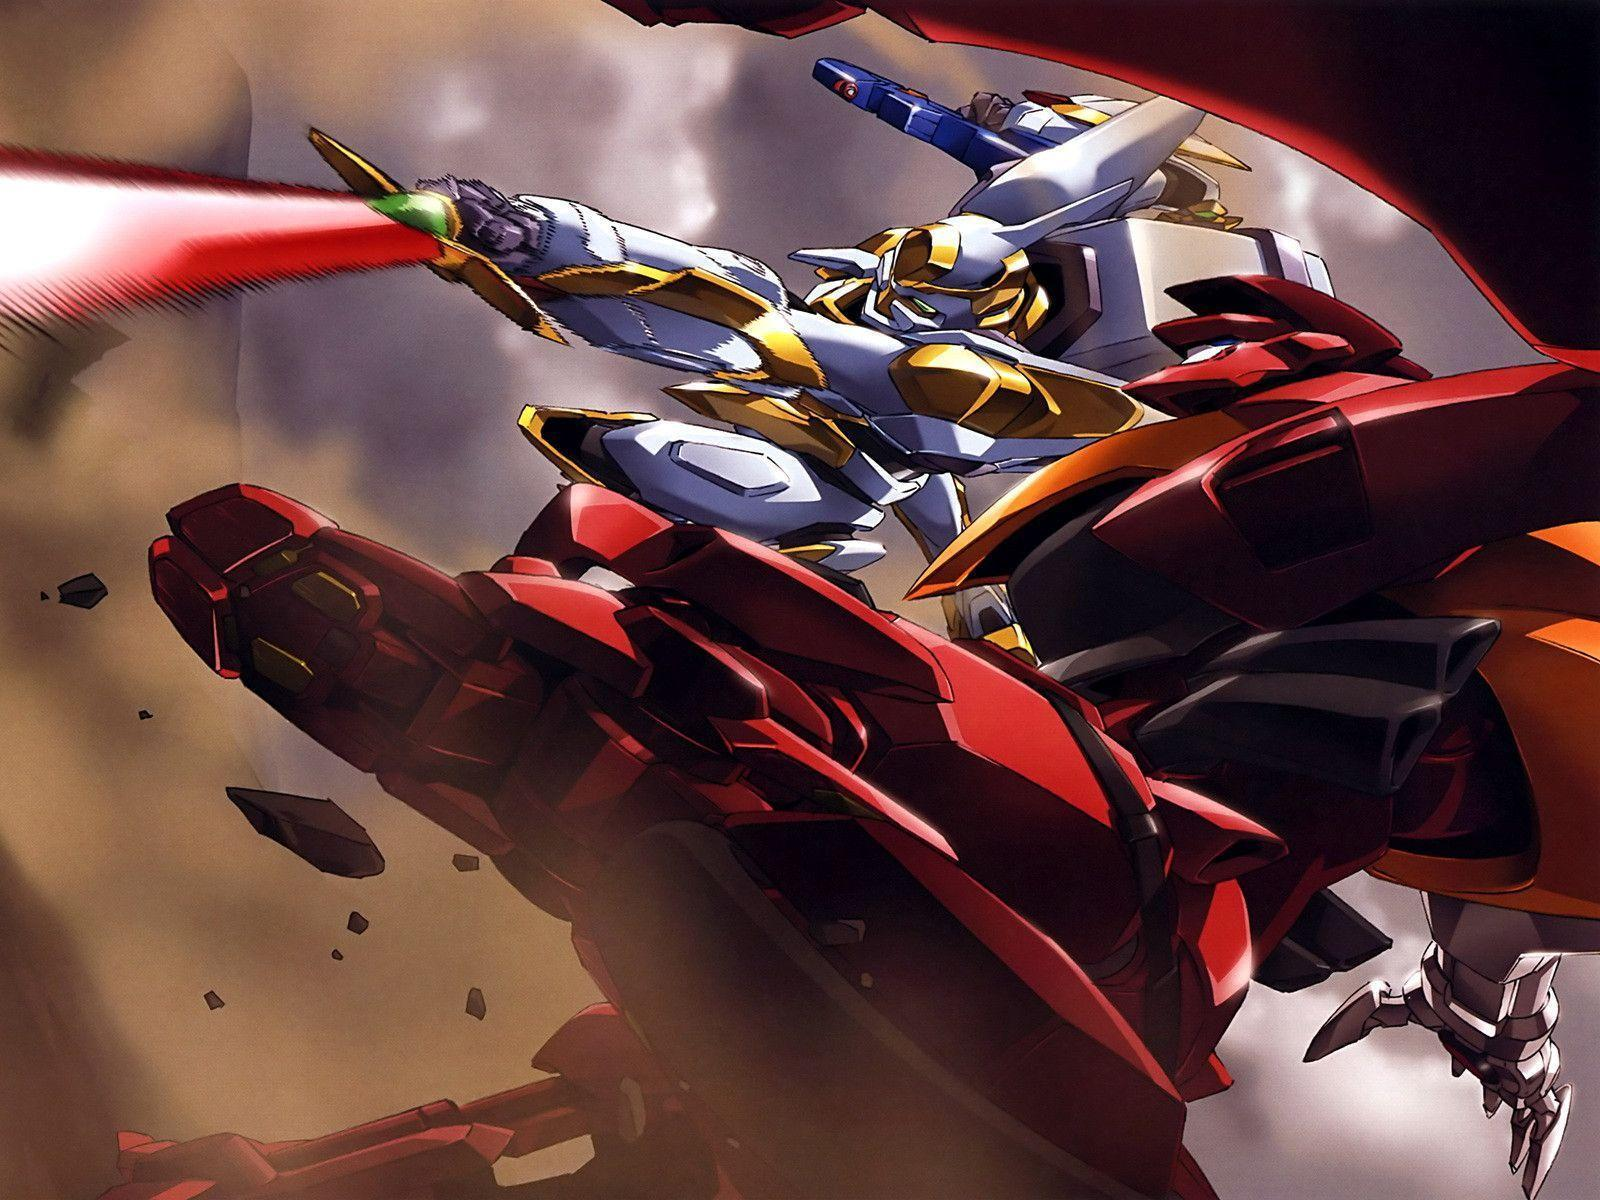 Code Geass Wallpapers Lancelot Image & Pictures